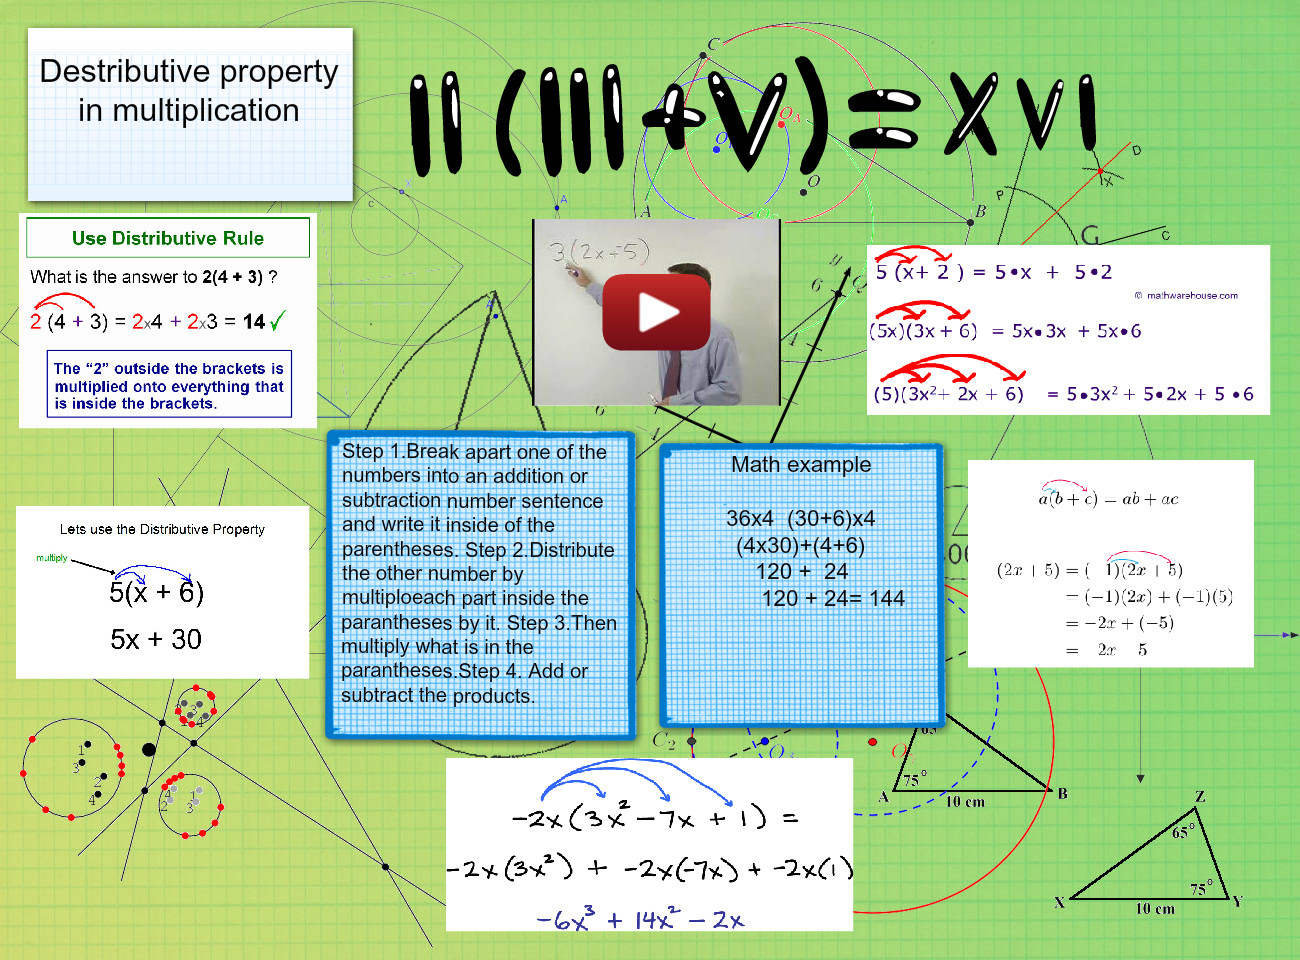 Destributive Property in Multiplication